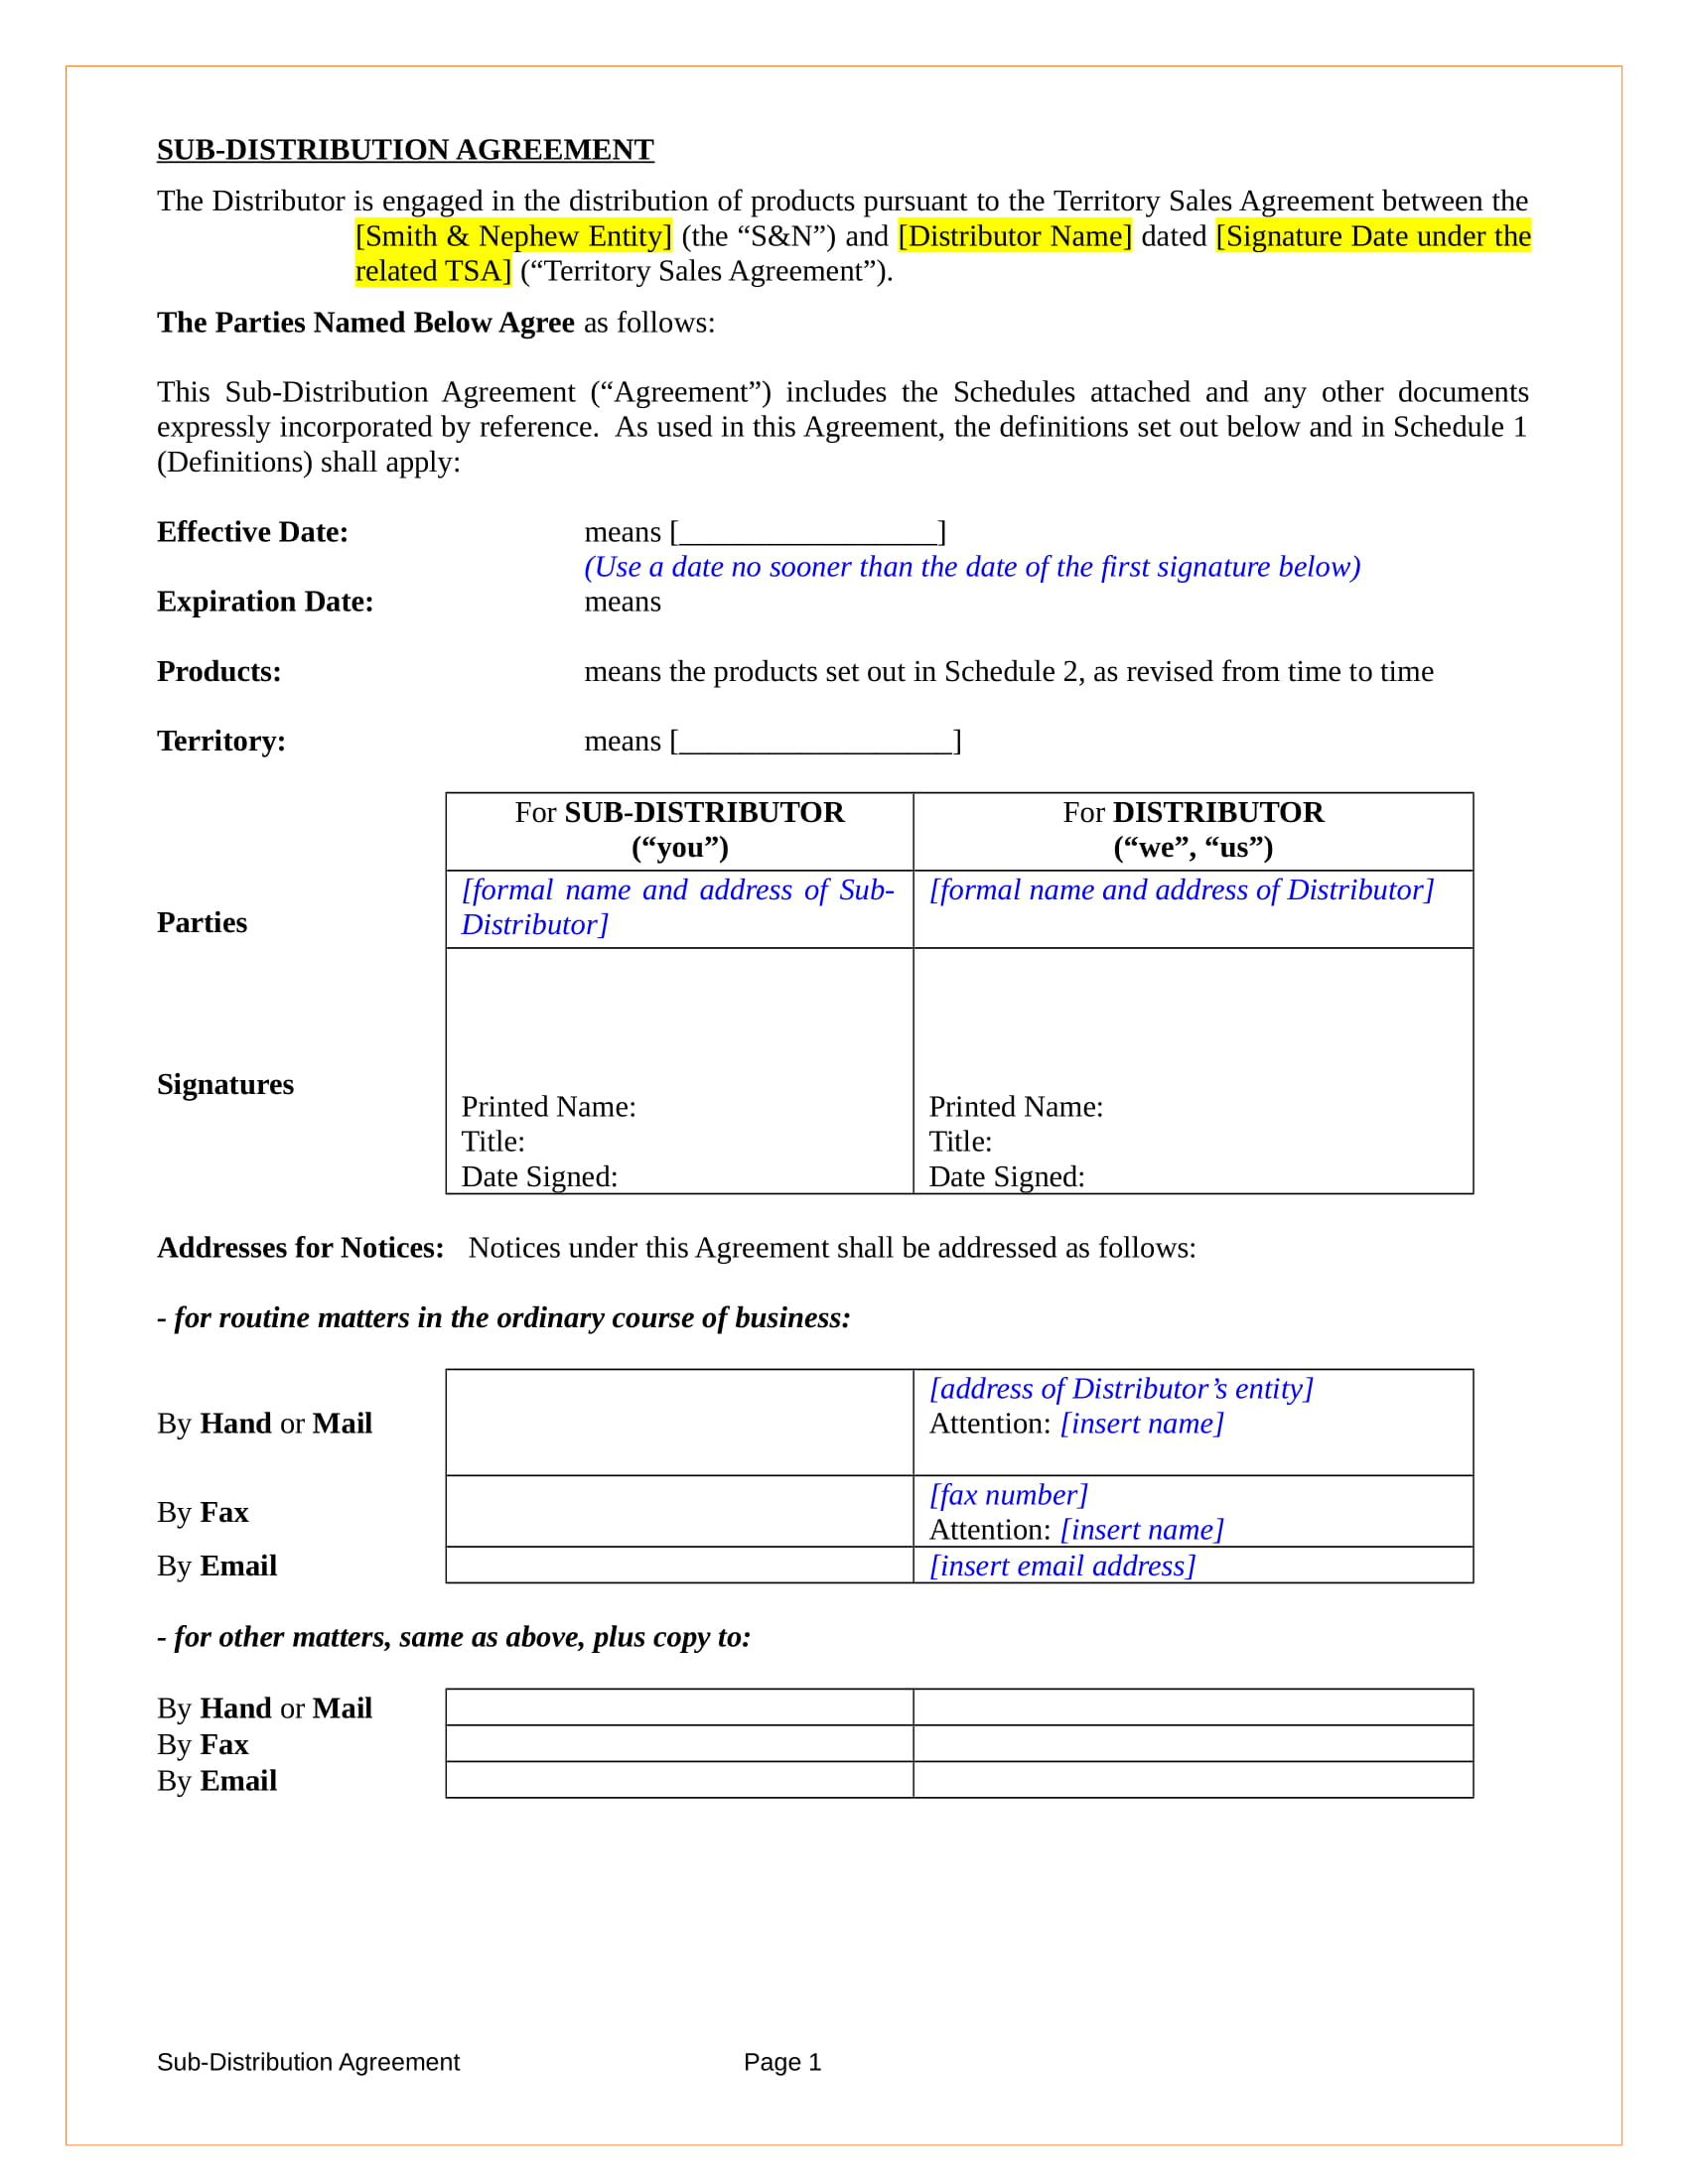 sub distribution agreement contract form in doc 01